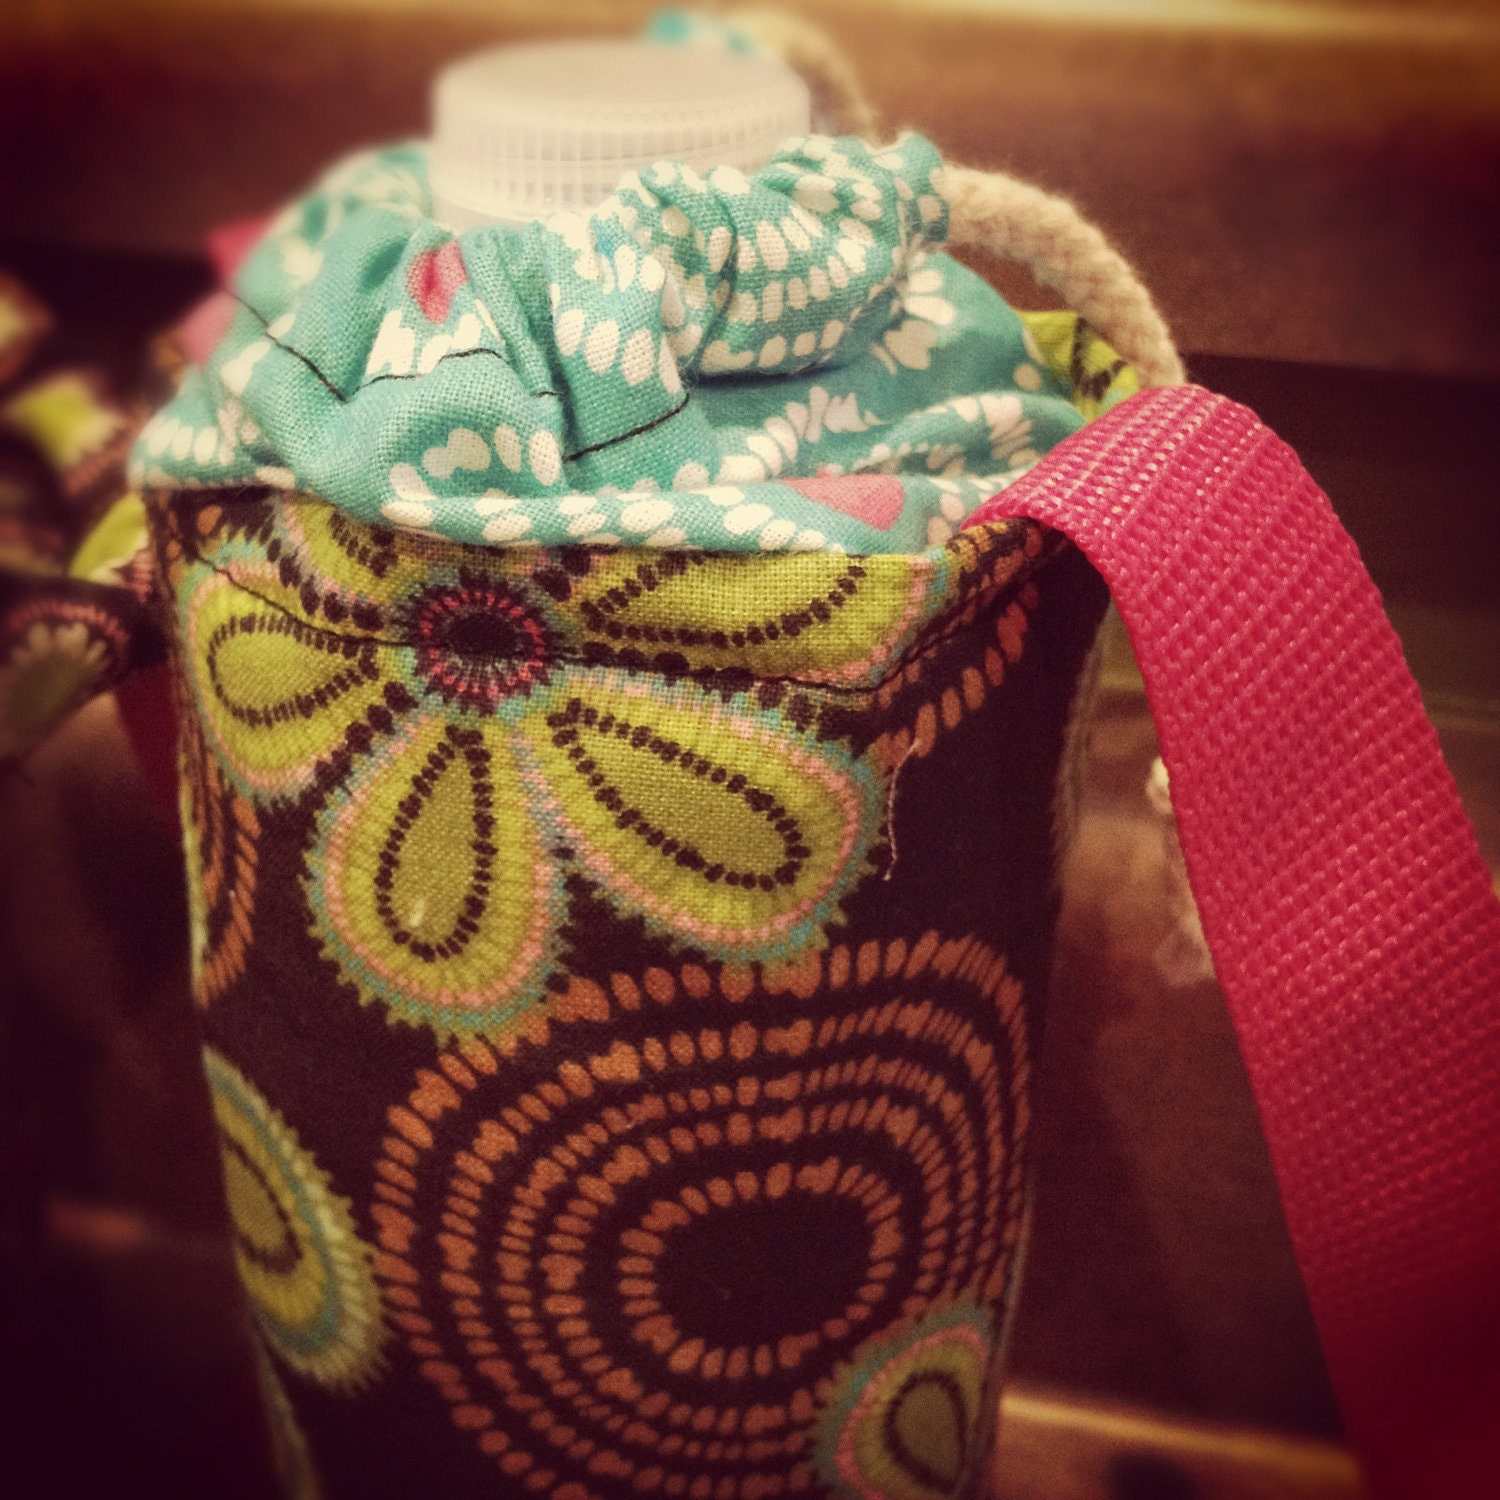 Insulated Water Bottle Carrier-Black and Teal Floral